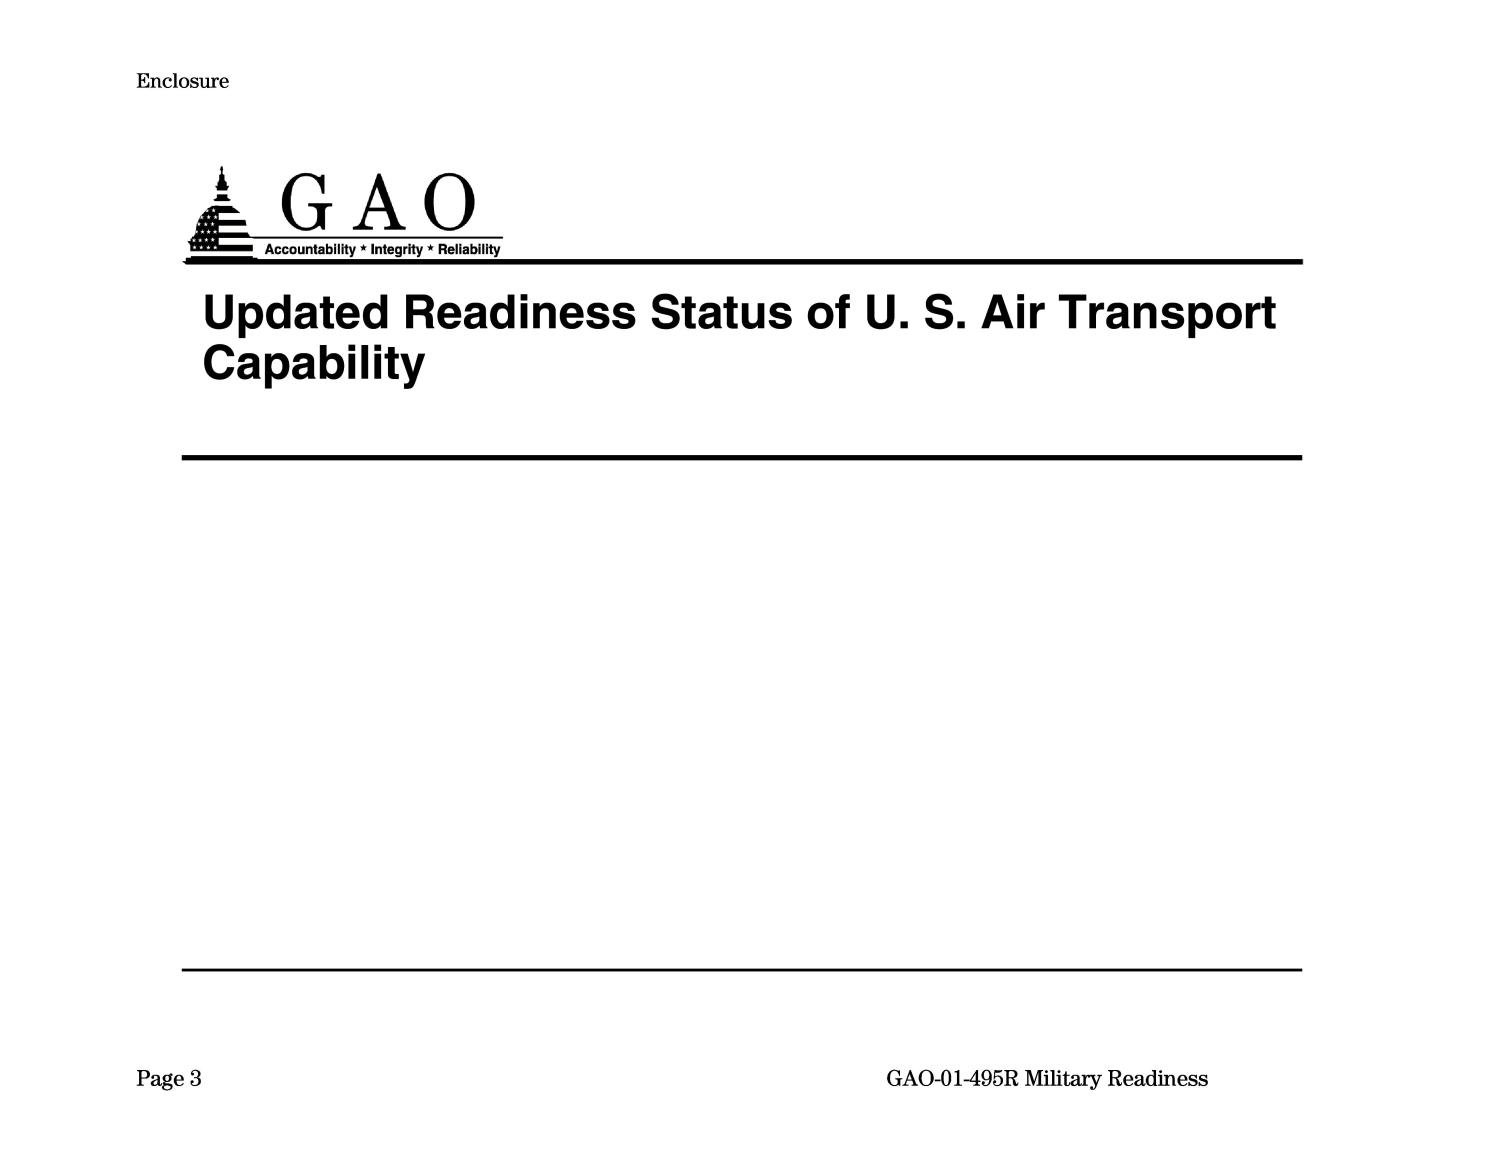 Military Readiness: Updated Readiness Status of U.S. Air Transport Capability                                                                                                      [Sequence #]: 3 of 19